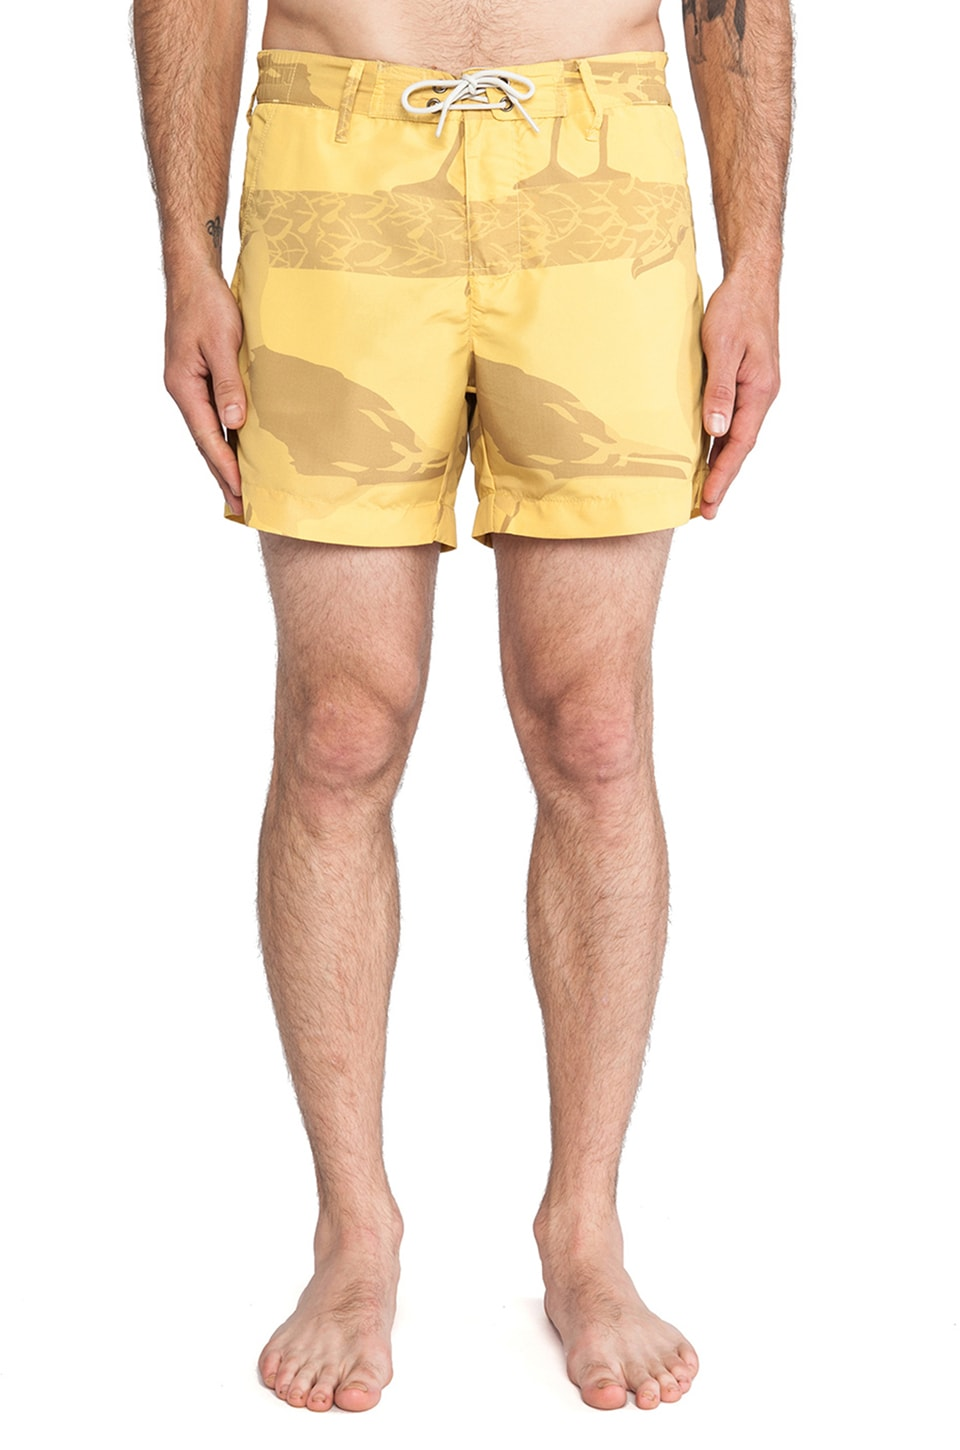 G-Star Islander Swimshorts in Dark Lemon